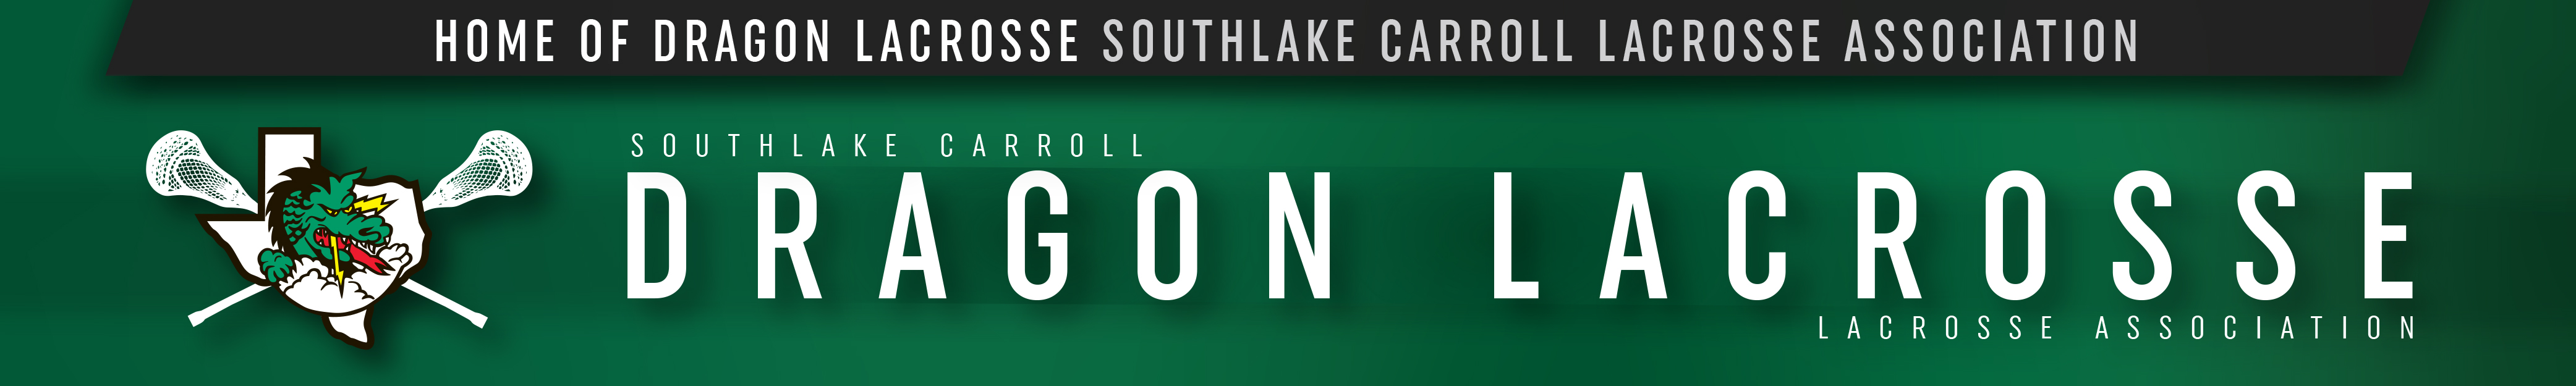 Southlake Carroll Lacrosse Association, Lacrosse, Goal, Field